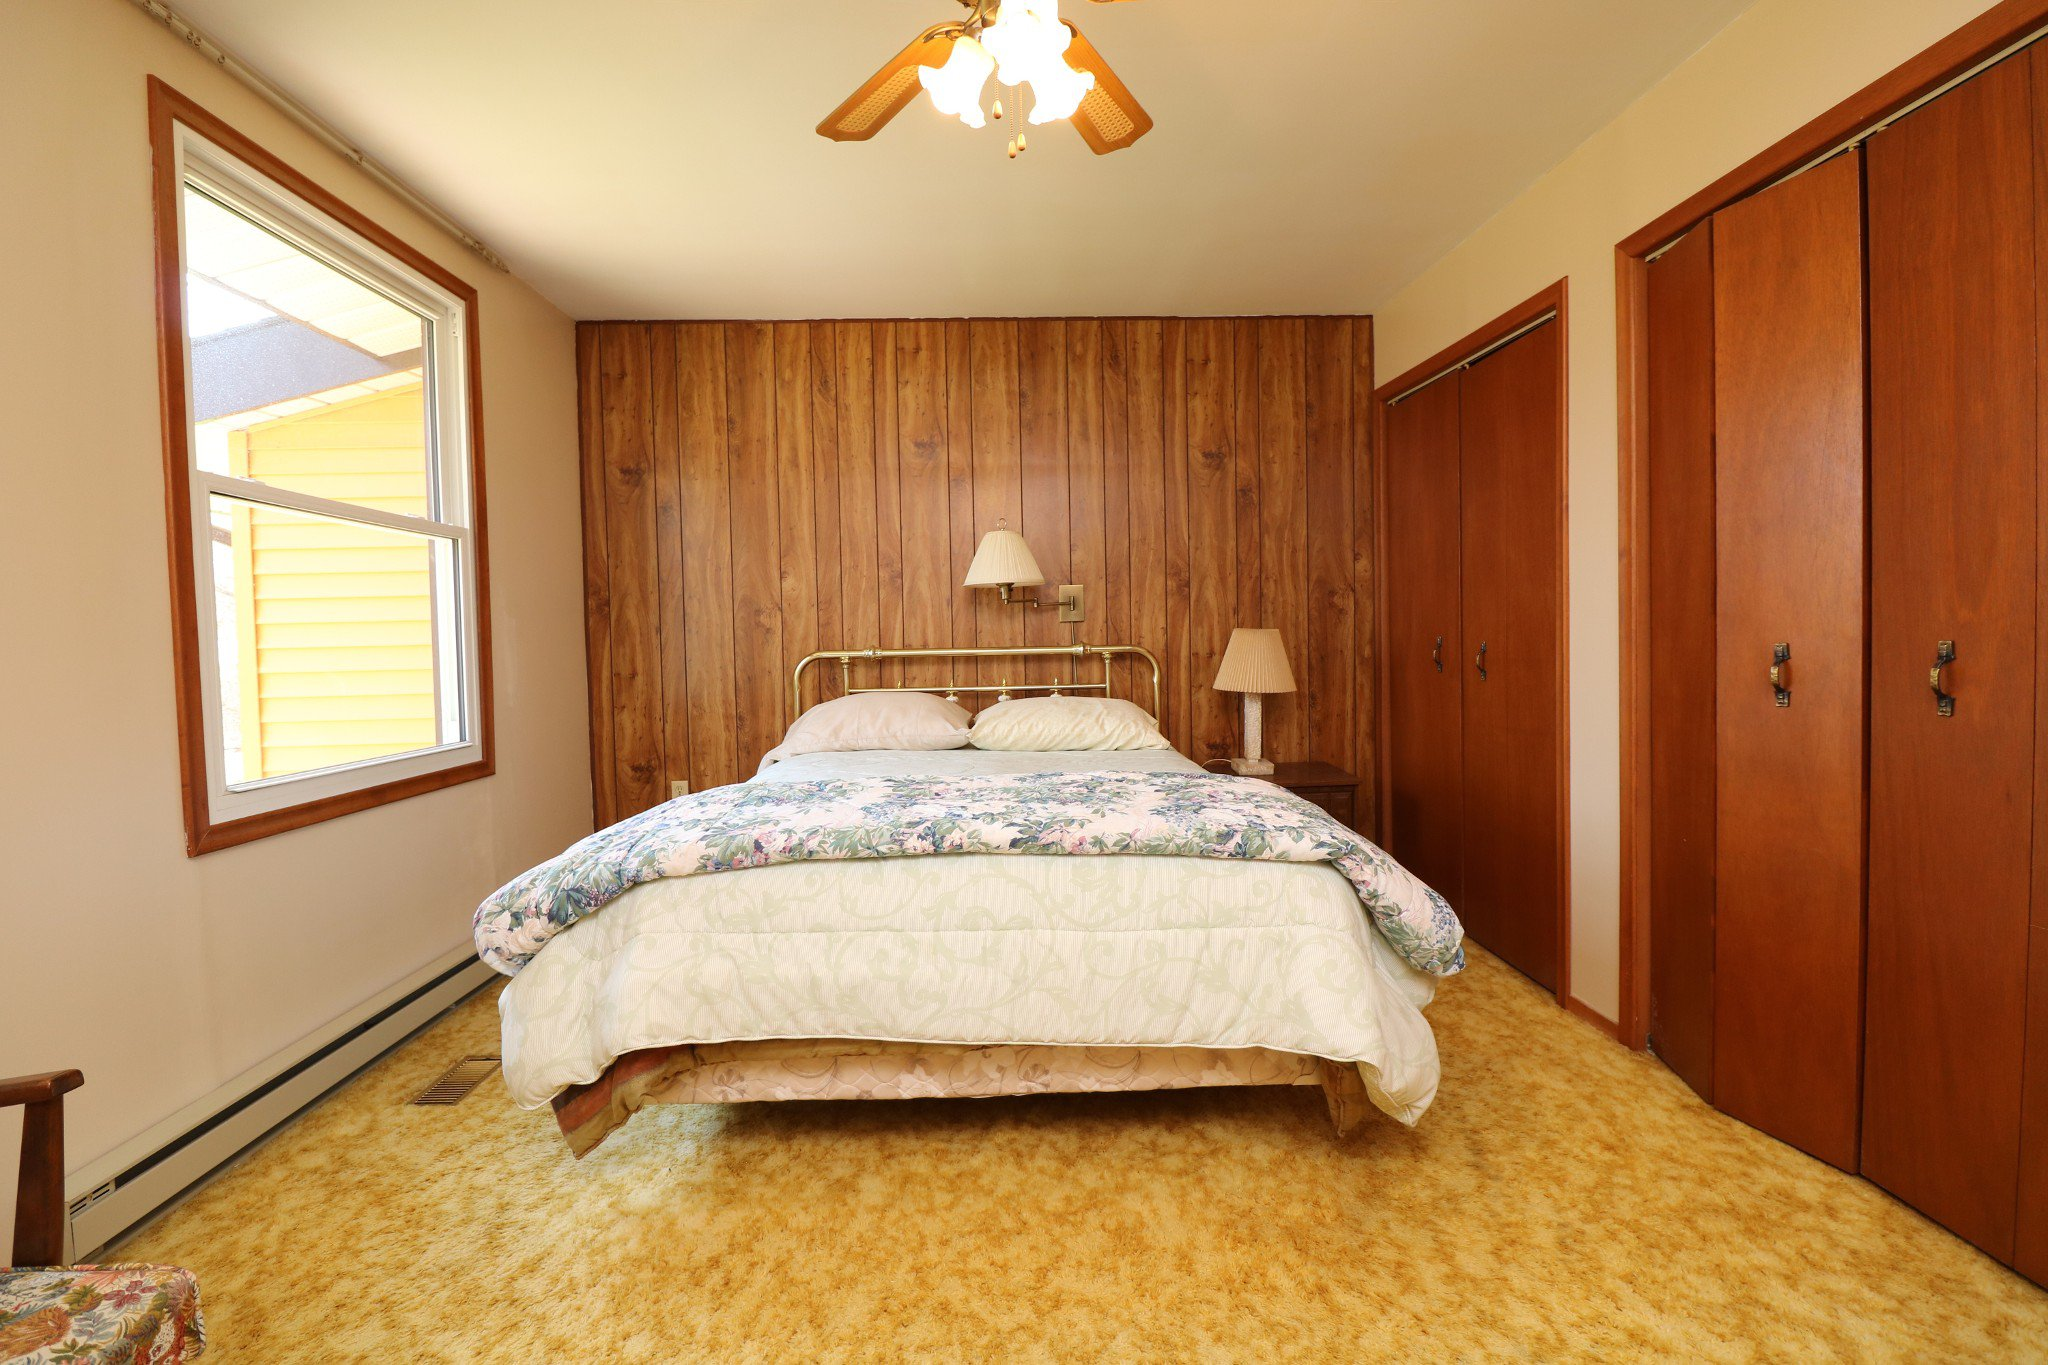 Photo 10: Photos: 37 Halstead Drive in Roseneath: Residential Detached for sale : MLS®# 192863